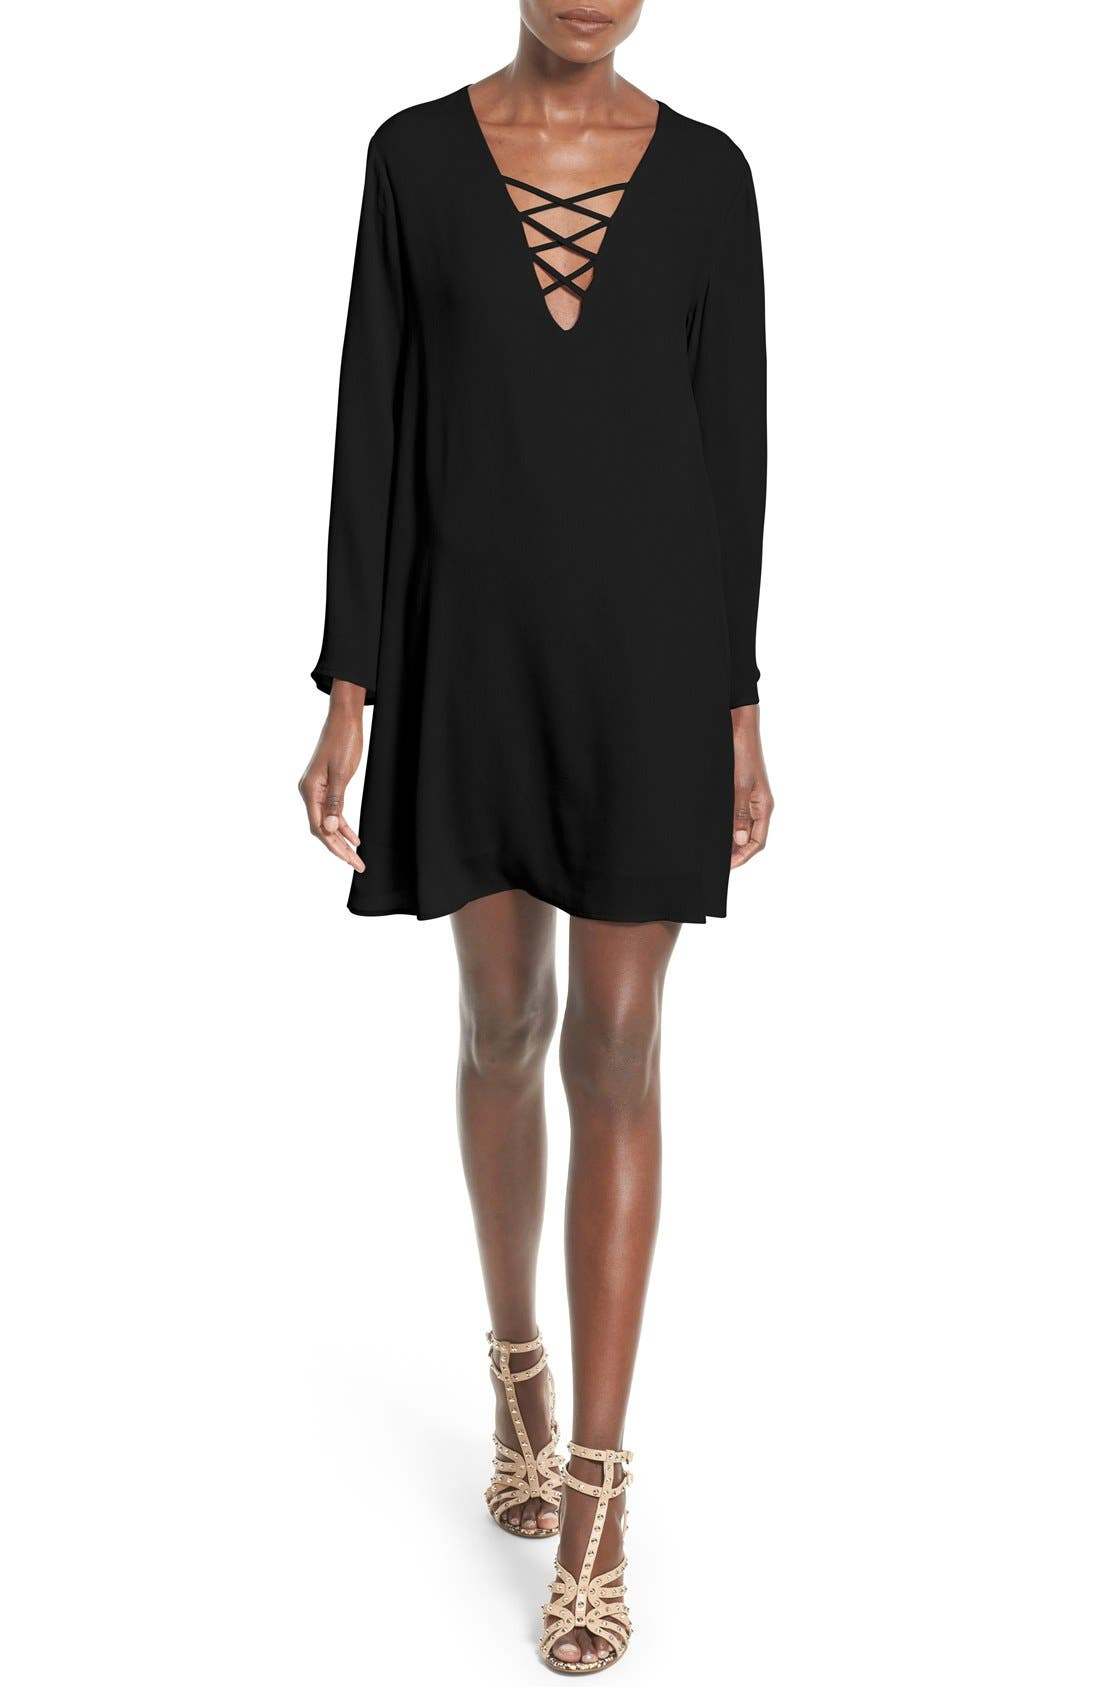 ASTR THE LABEL,                             ASTR Lace-Up Bell Sleeve Shift Dress,                             Main thumbnail 1, color,                             001